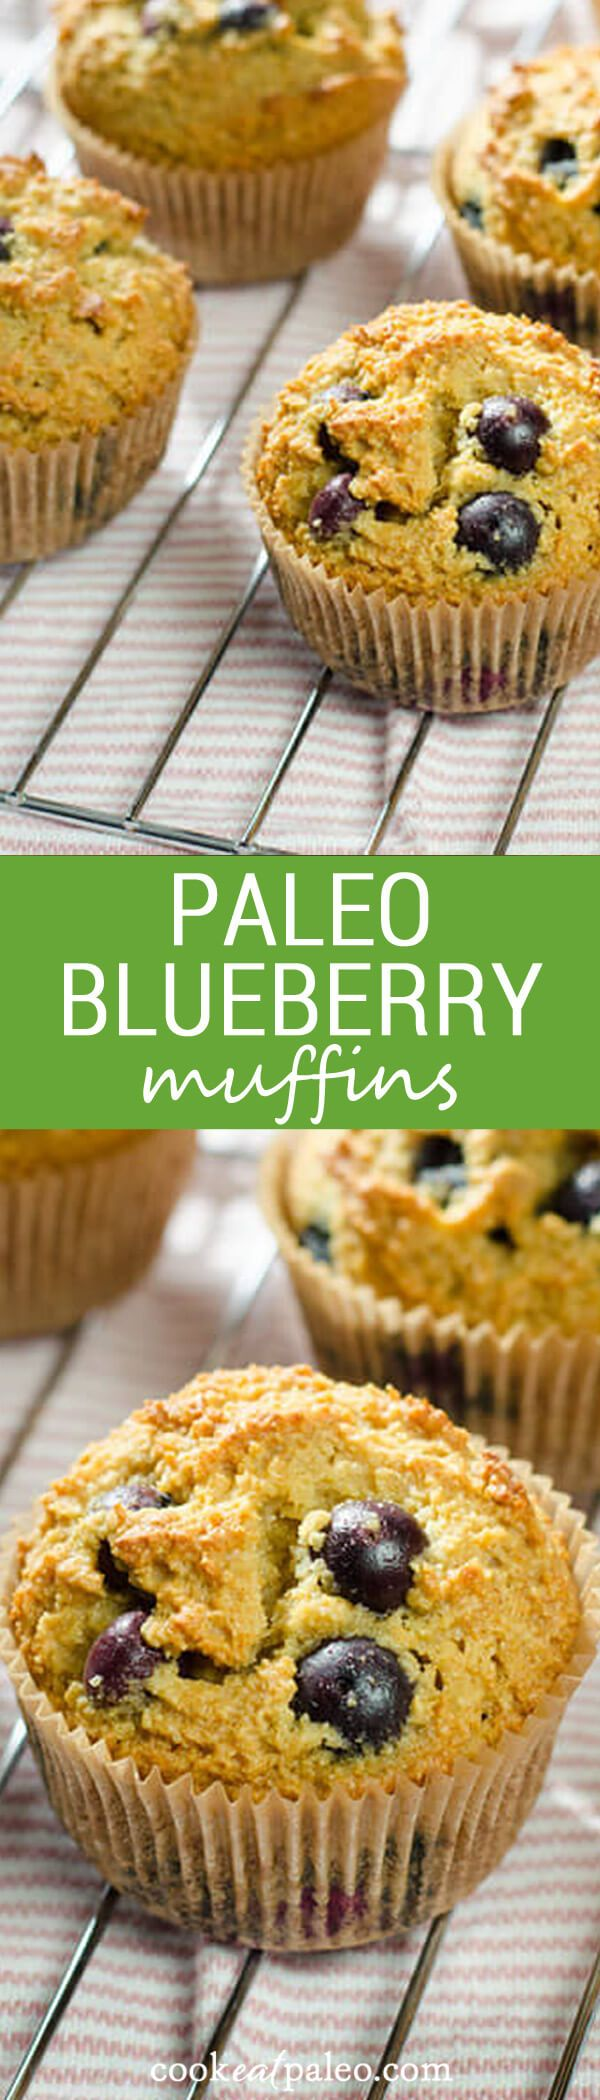 These paleo blueberry muffins are one of my favorite breakfasts. This recipe is gluten-free, grain-free, and easy to make ahead and freeze for the week. via @cookeatpaleo